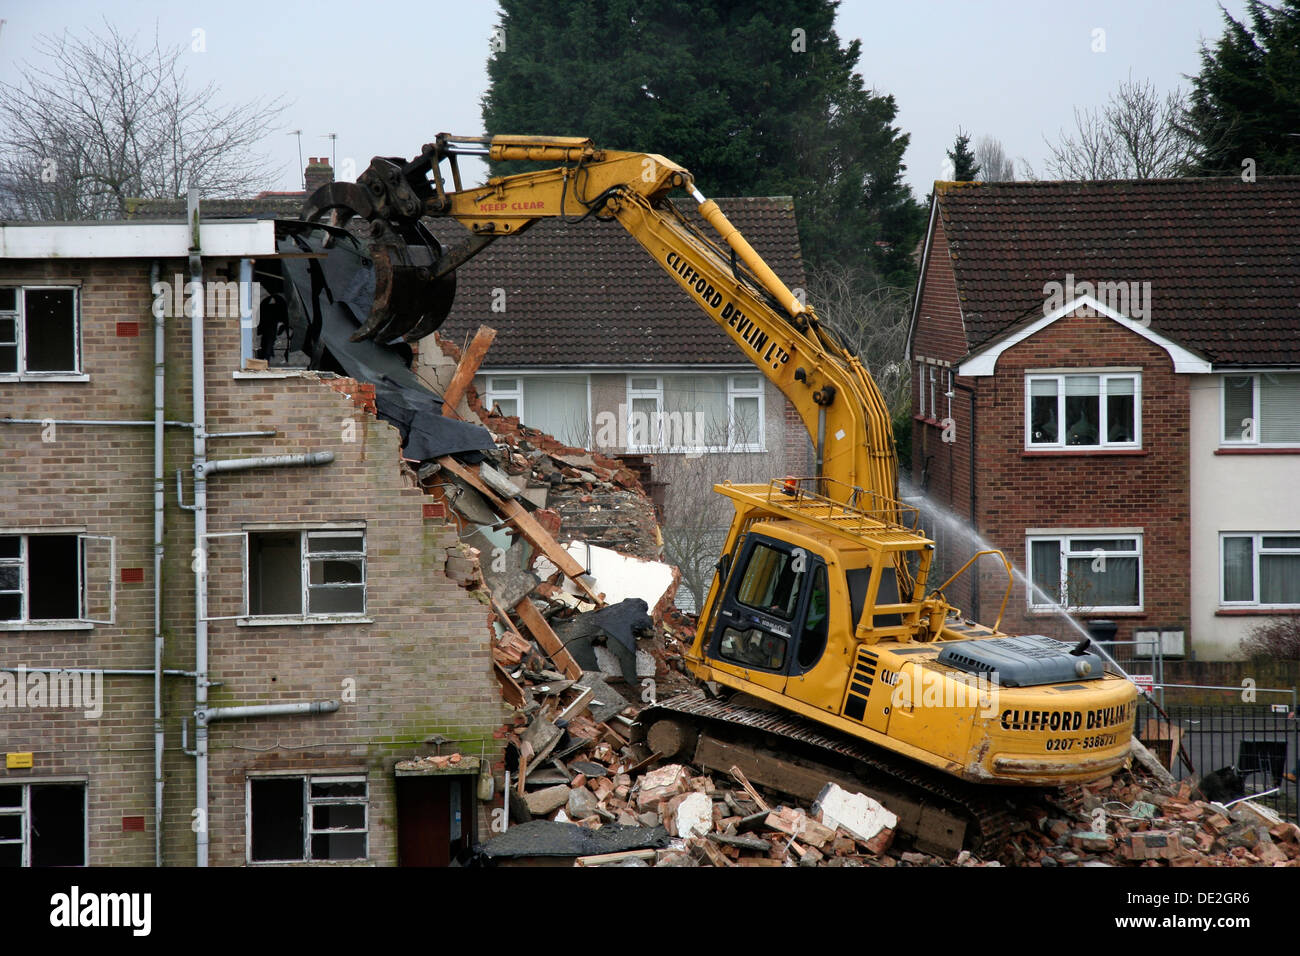 the demolition of a small block of flats using an excavator water